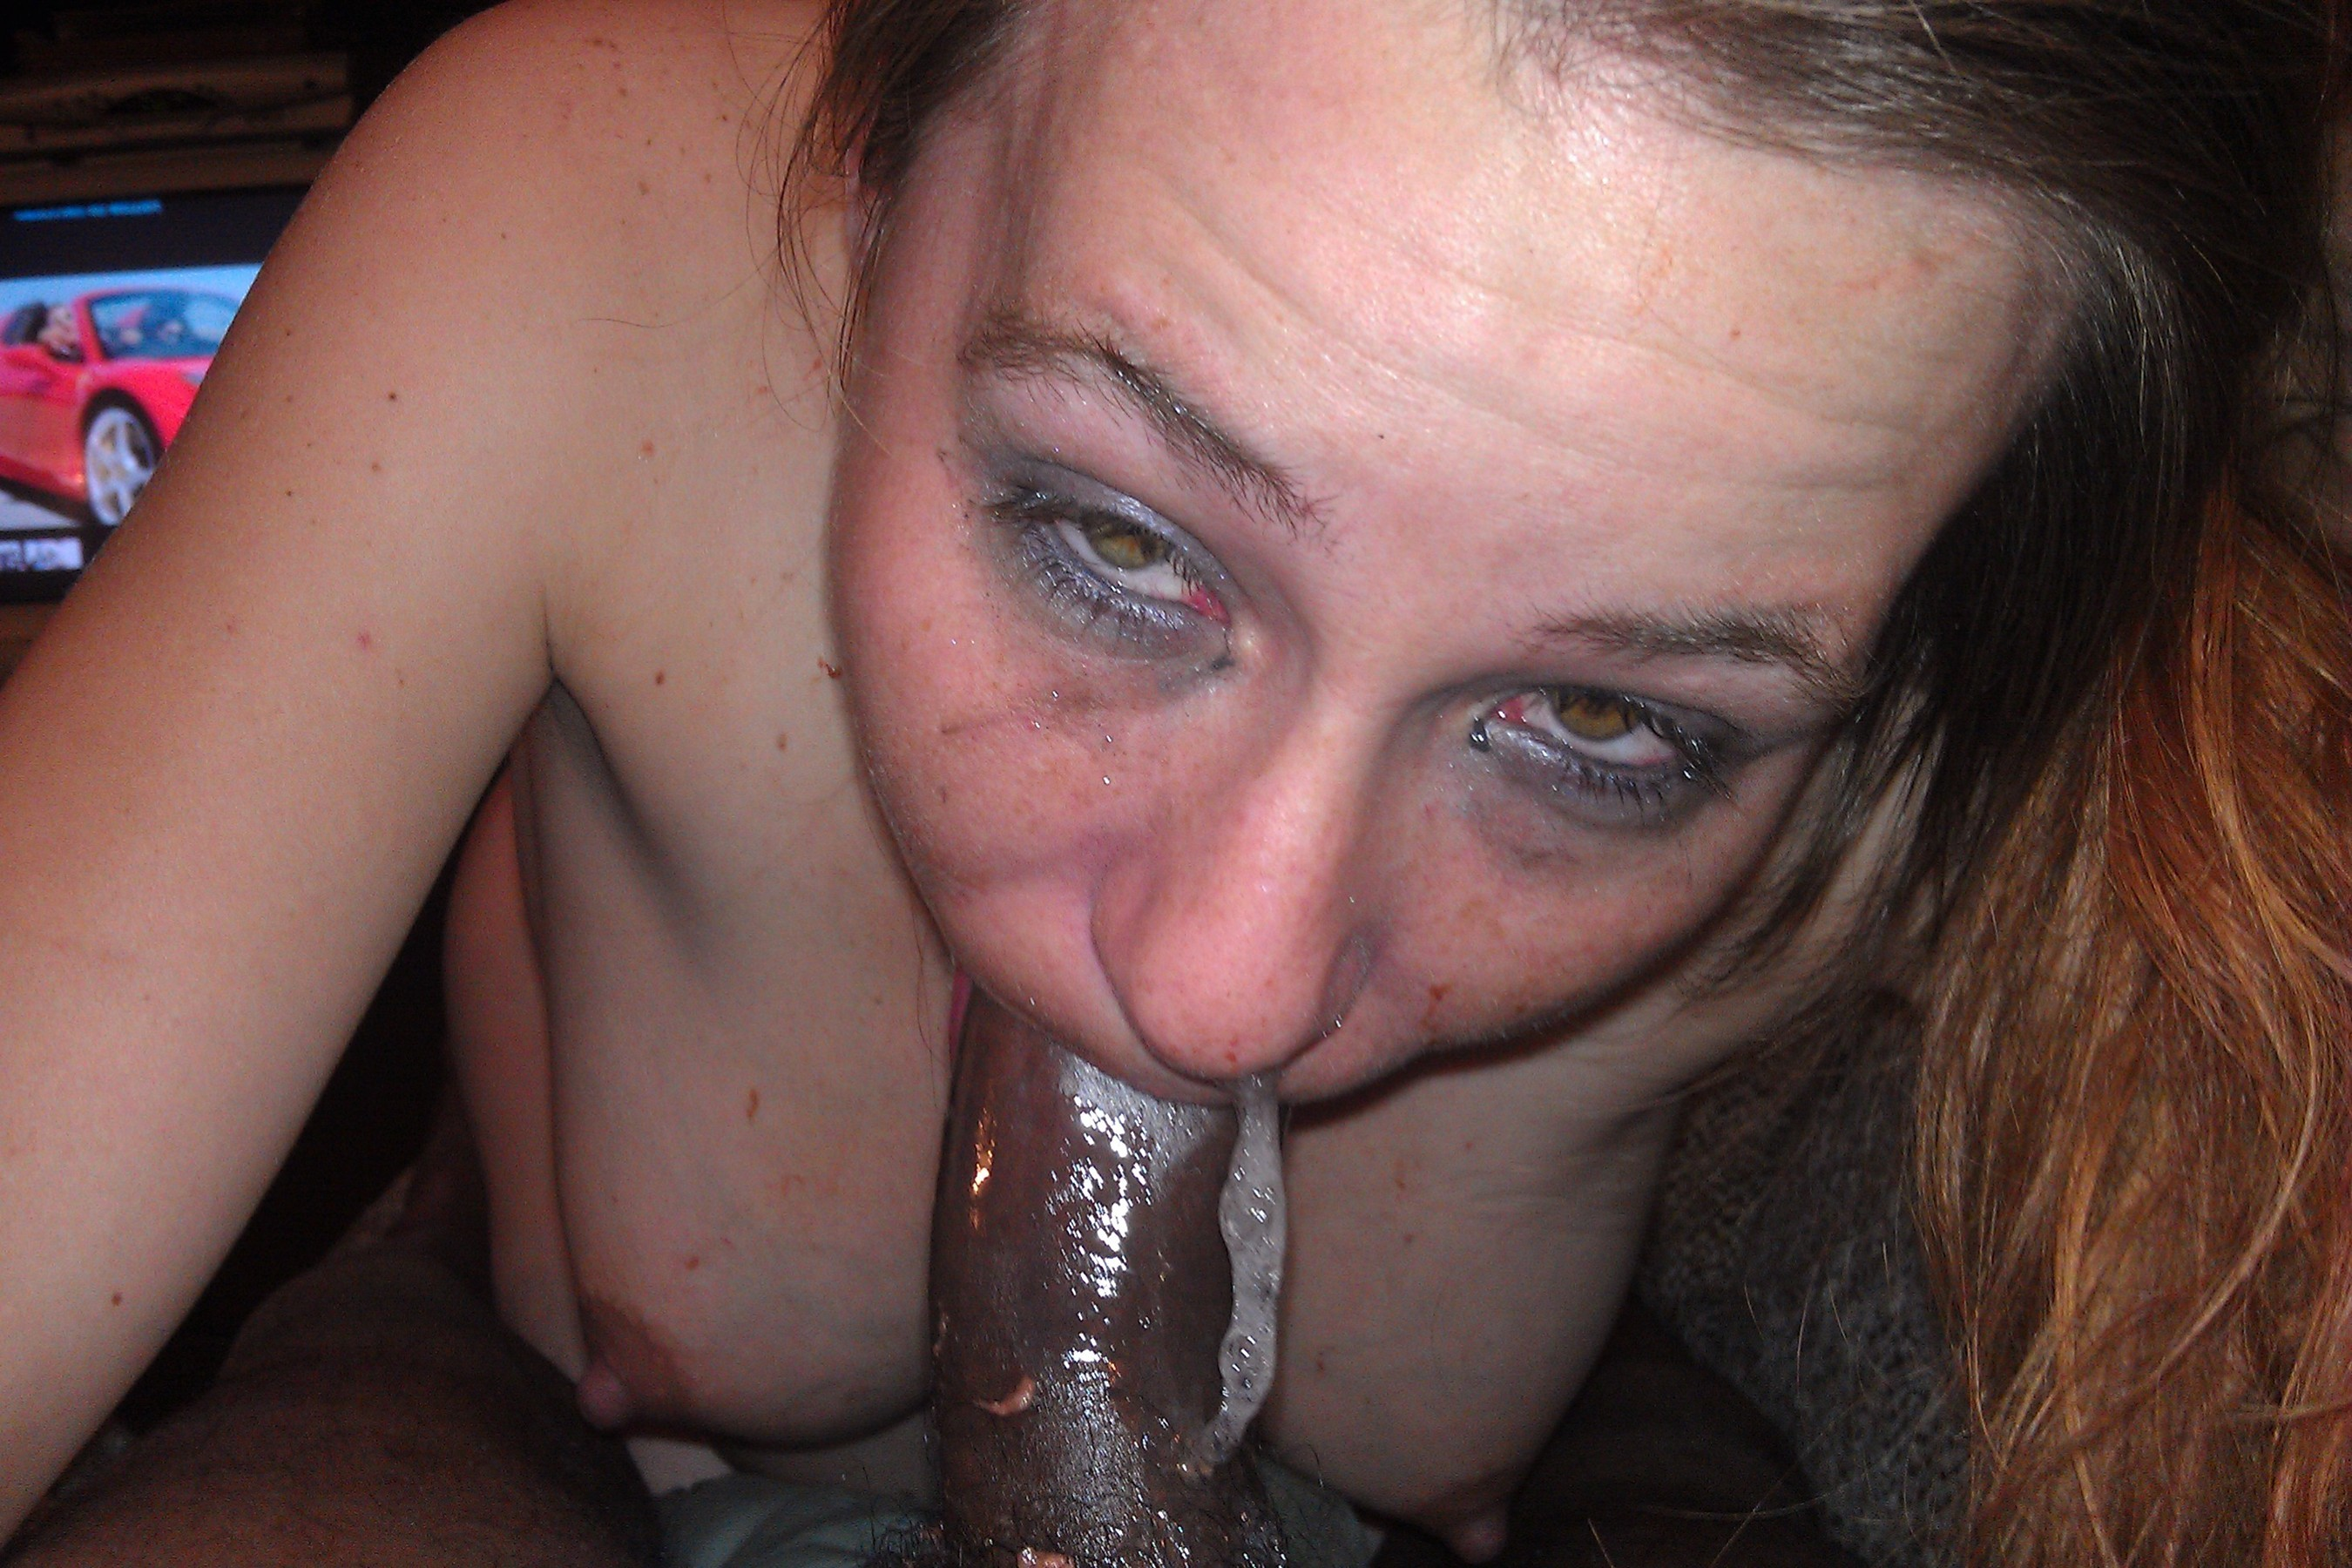 men cuming in womens mouth nude